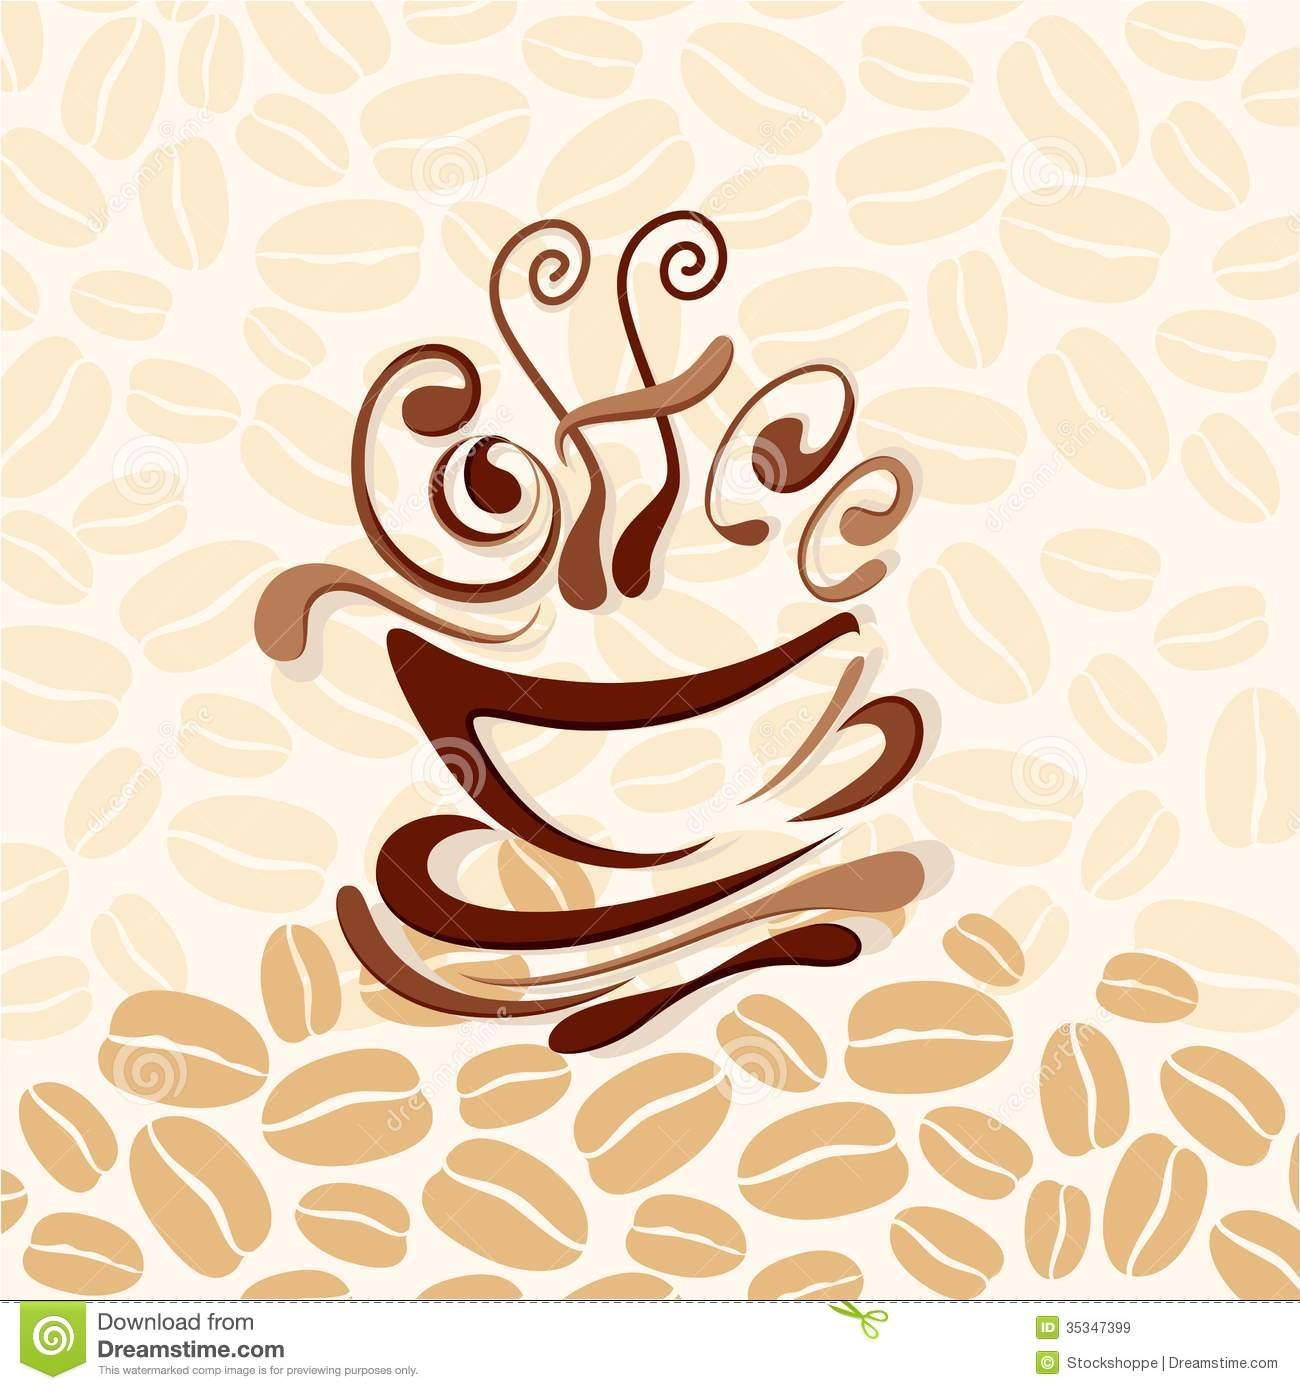 Coffee Background Royalty Free Stock Images - Image: 35347399